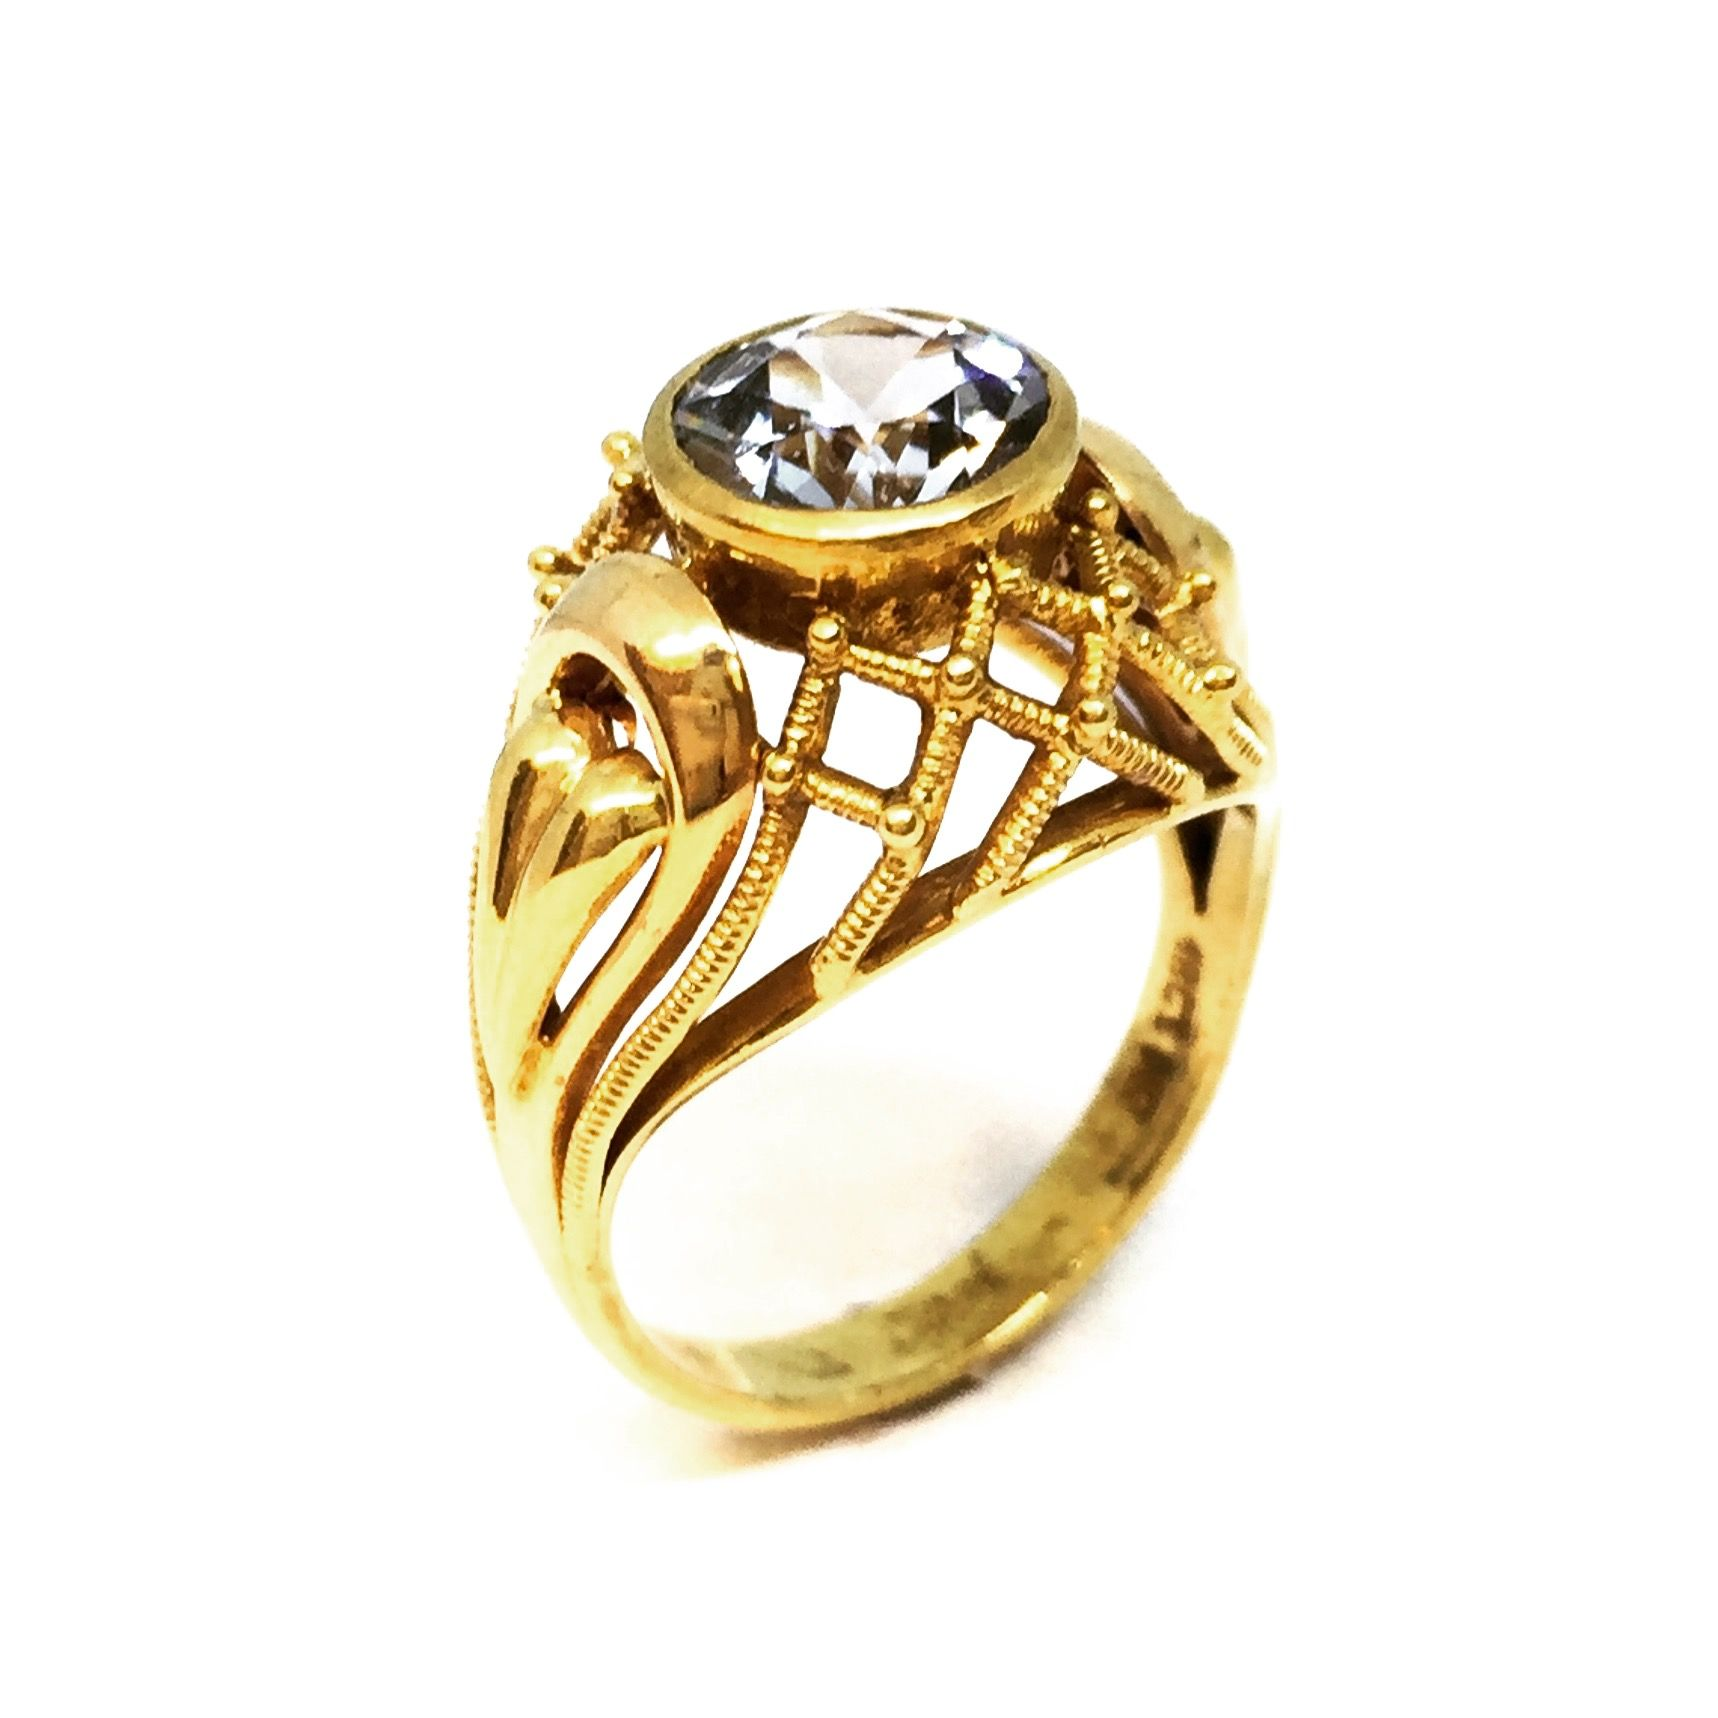 share diamond original bluestone p ring in gold the price luben white sapphire